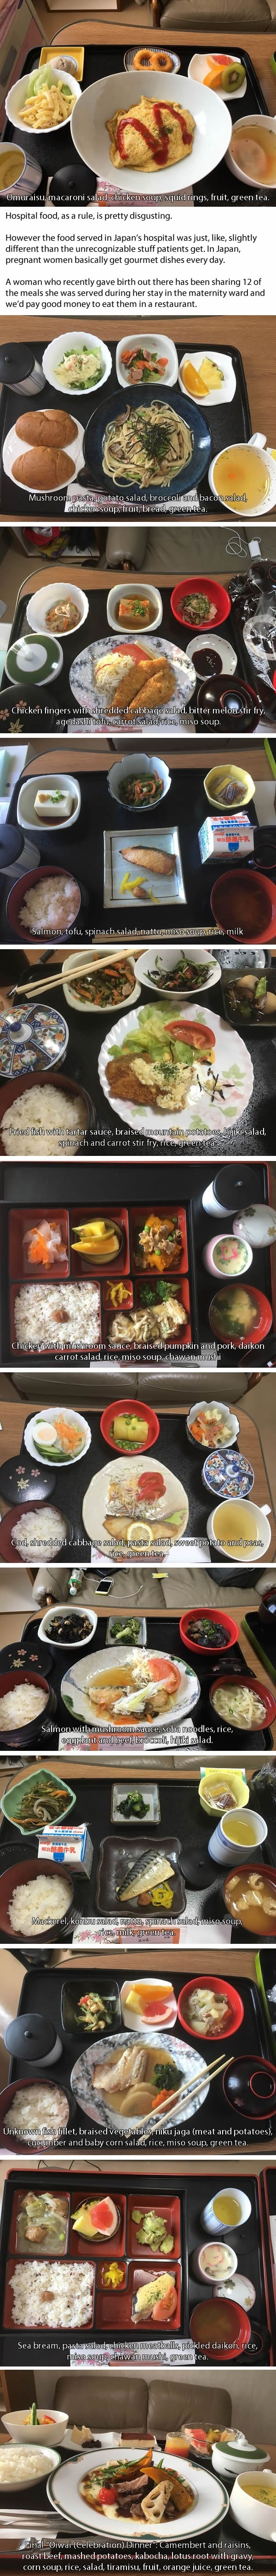 Woman who gave birth in Japan shares the food she had in the hospital